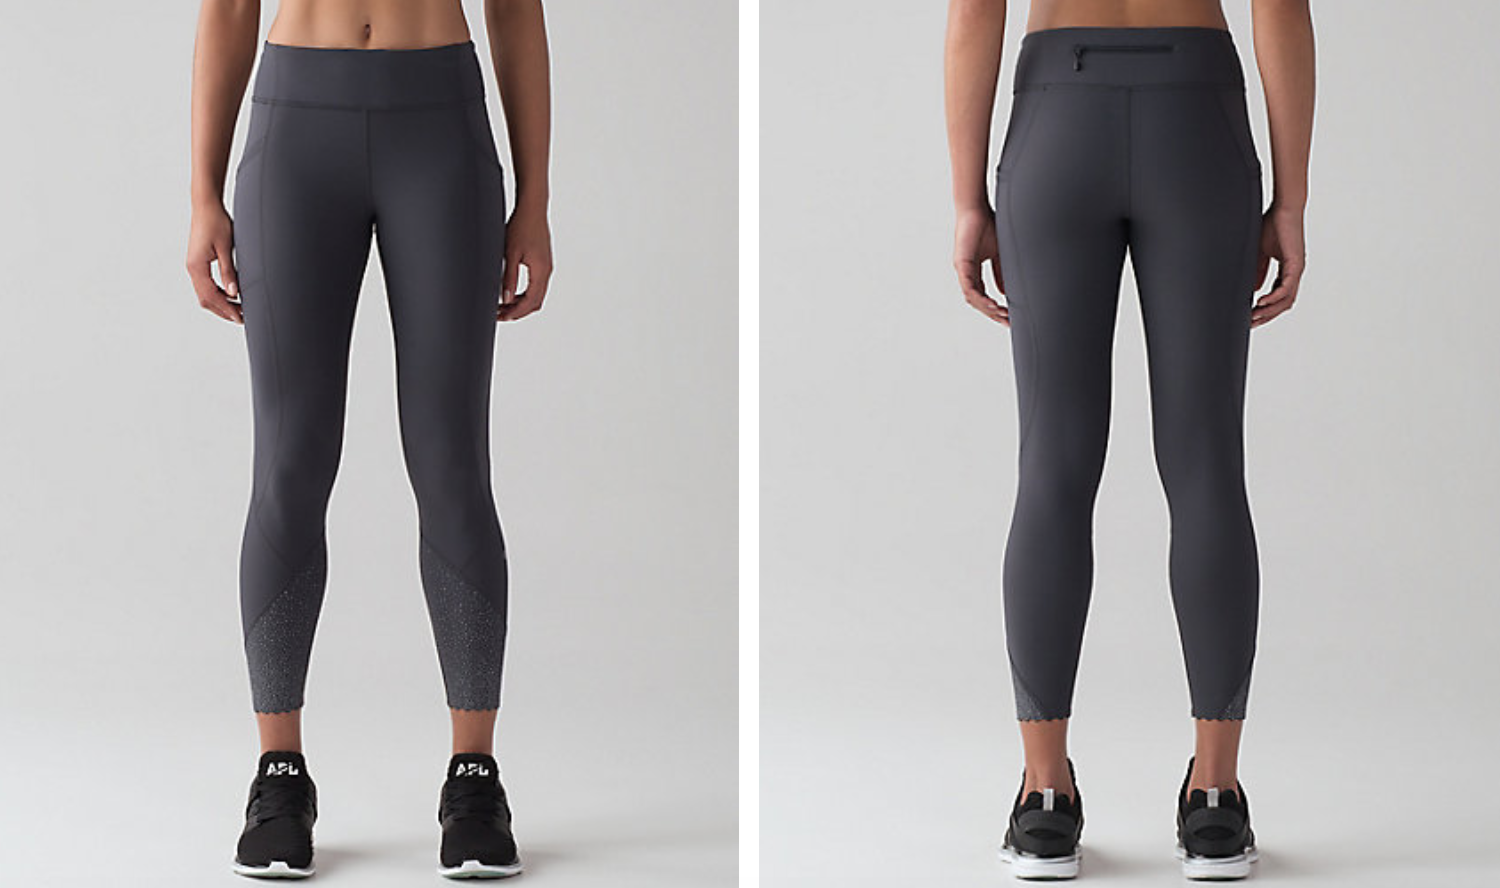 https://api.shopstyle.com/action/apiVisitRetailer?url=https%3A%2F%2Fshop.lululemon.com%2Fp%2Fwomen-pants%2FTight-Stuff-Tight-II%2F_%2Fprod8260650%3Frcnt%3D32%26N%3D1z13ziiZ7z5%26cnt%3D52%26color%3DLW5ALBS_028892&site=www.shopstyle.ca&pid=uid6784-25288972-7